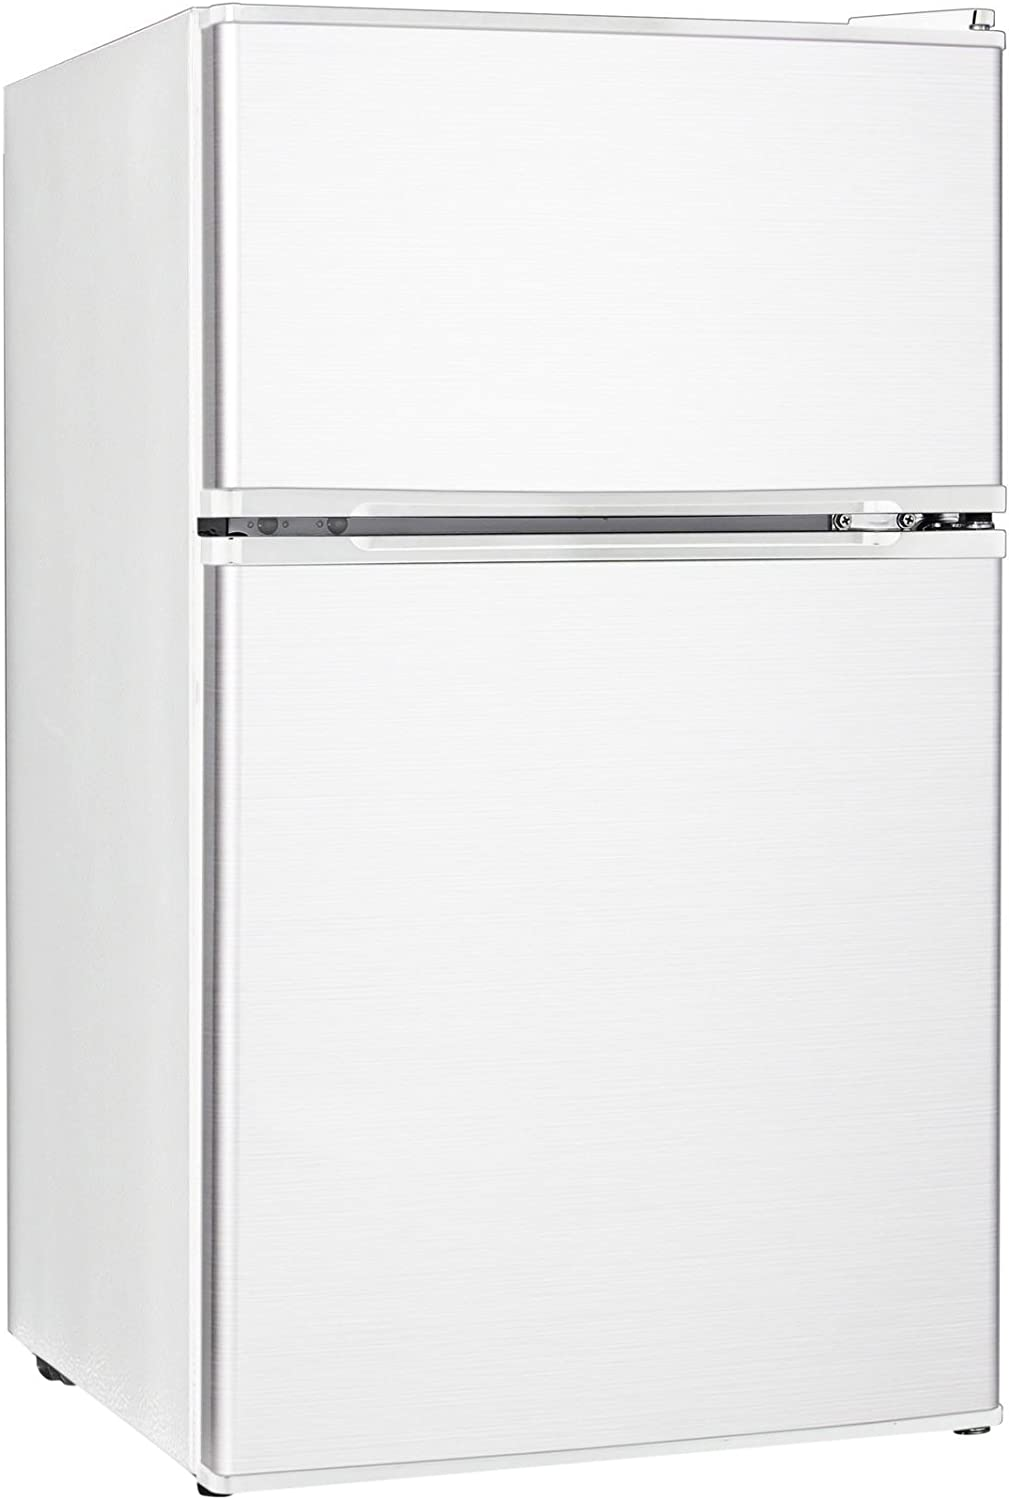 Top 6 Best Compact Refrigerator Freezer Combo [Buying Guide-2021] 1